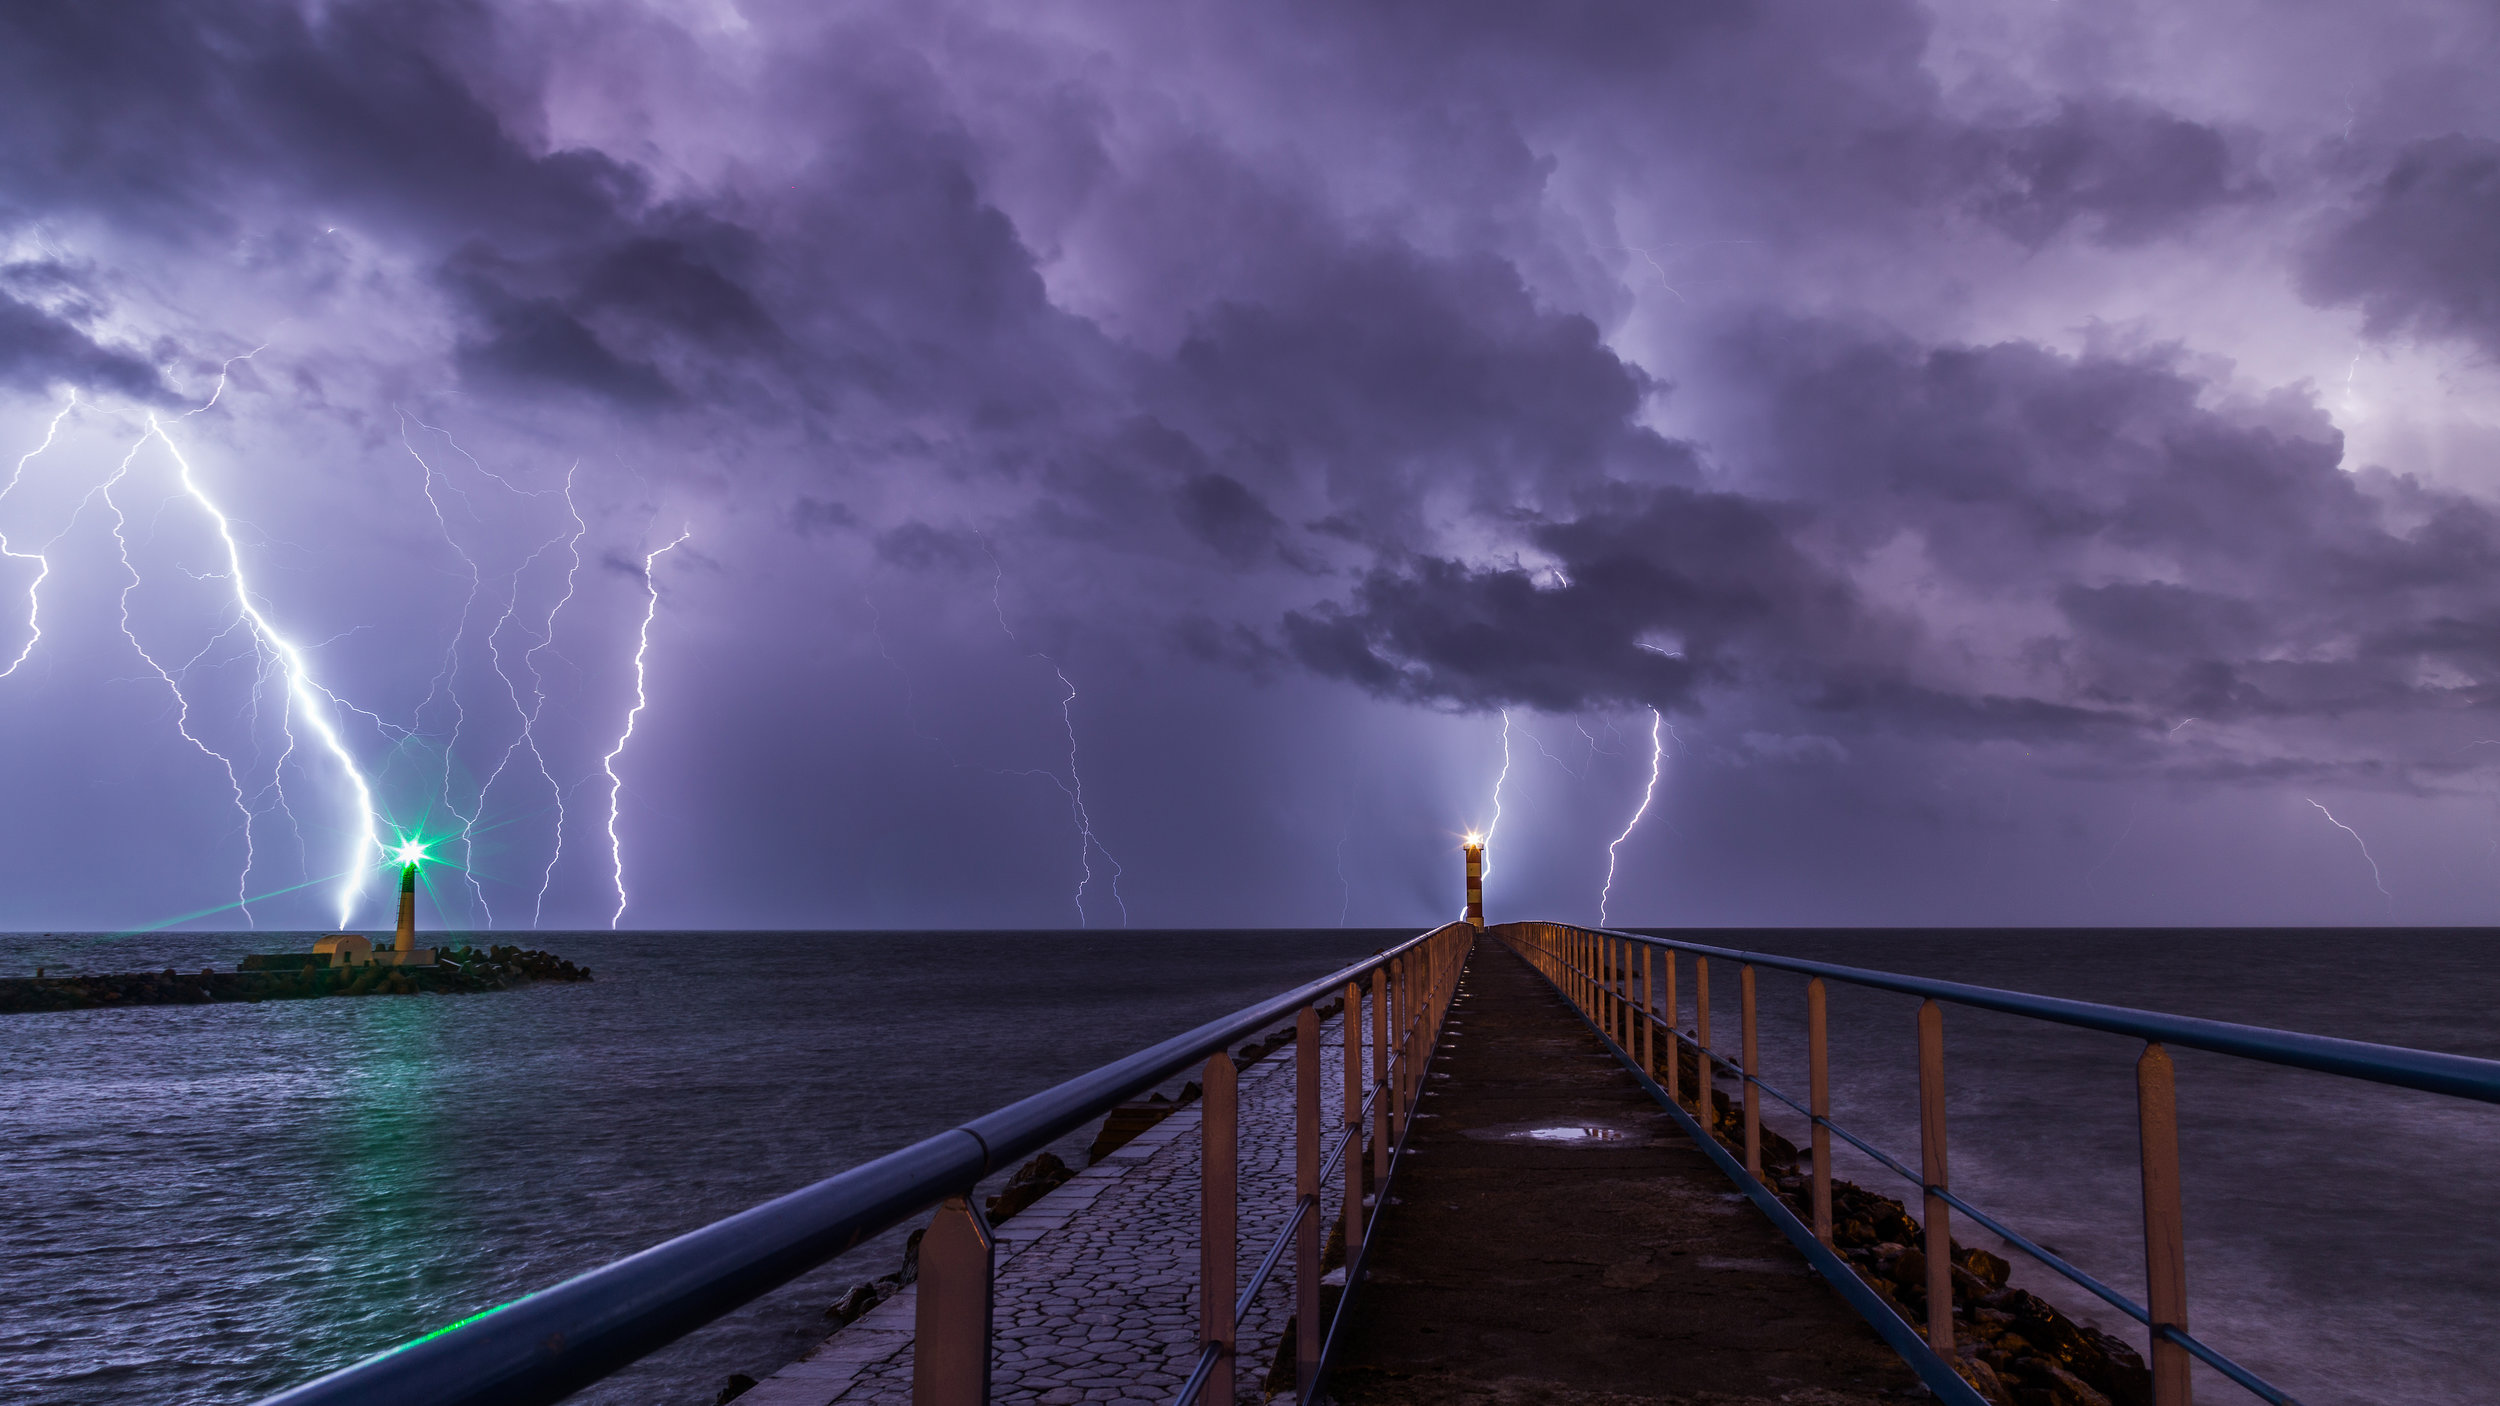 Port_and_lighthouse_overnight_storm_with_lightning_in_Port-la-Nouvelle.jpg